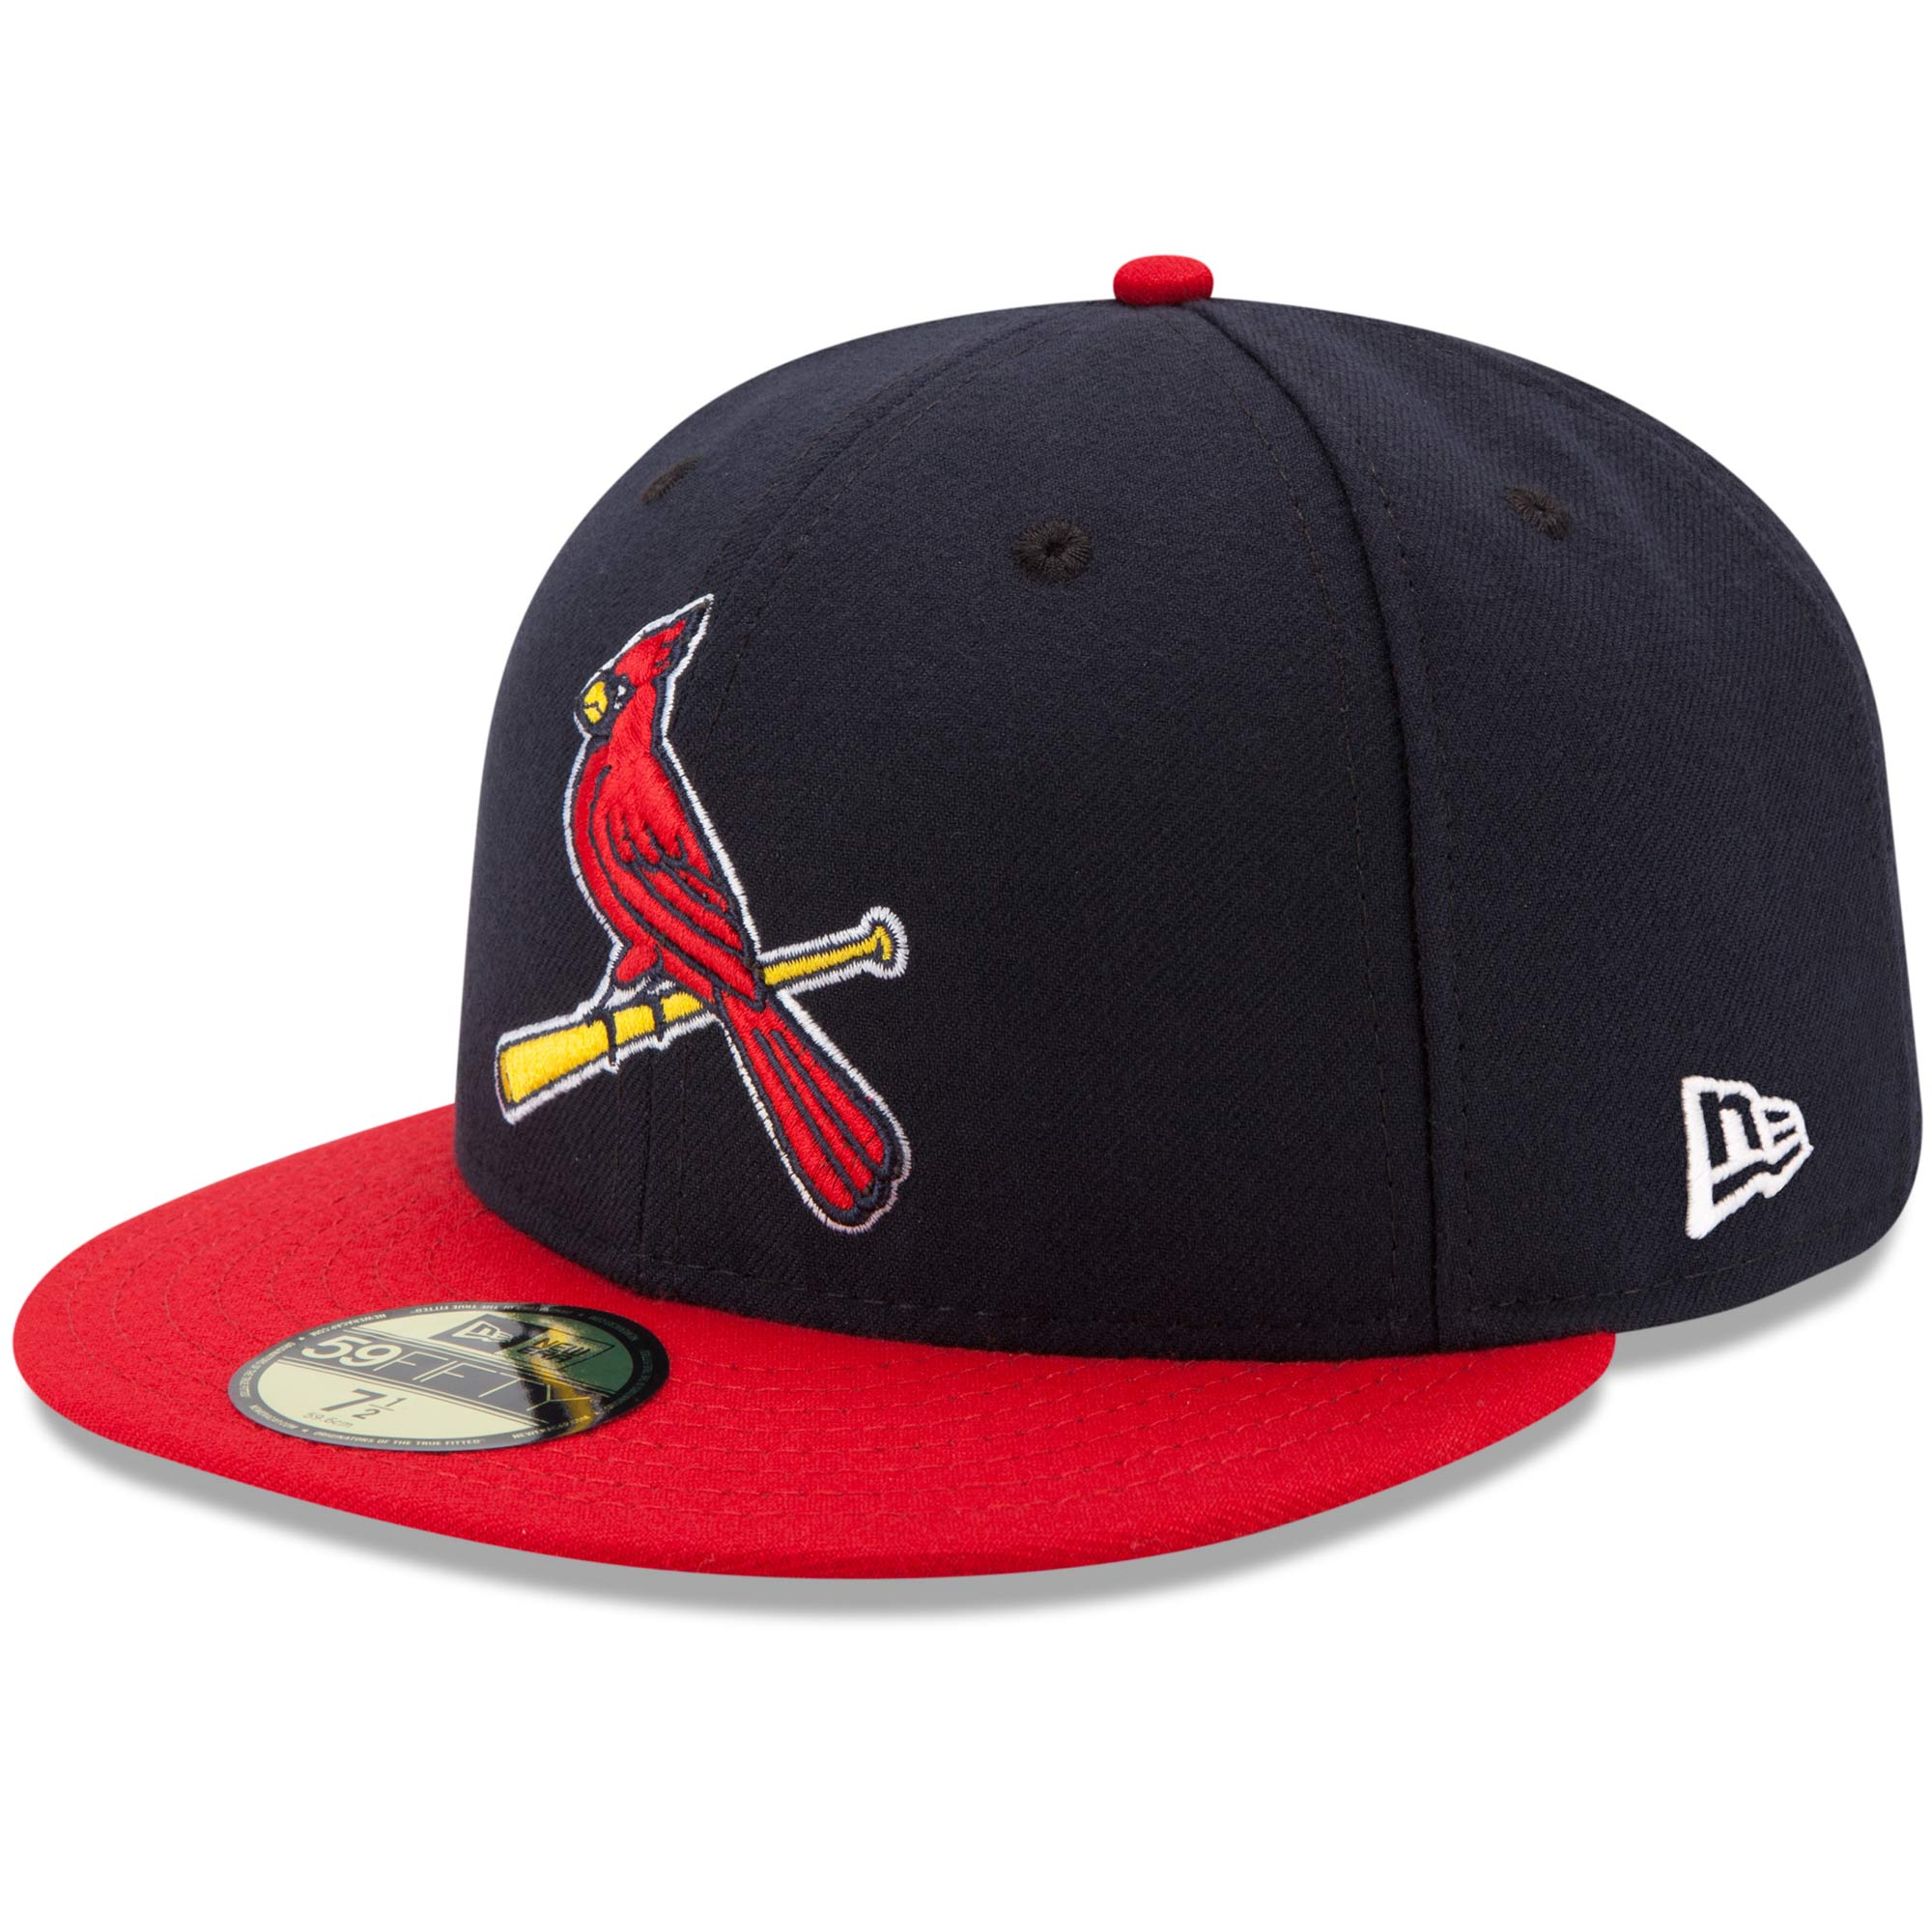 St. Louis Cardinals New Era Alternate 2 Authentic Collection On-Field 59FIFTY Fitted Hat - Navy/Red